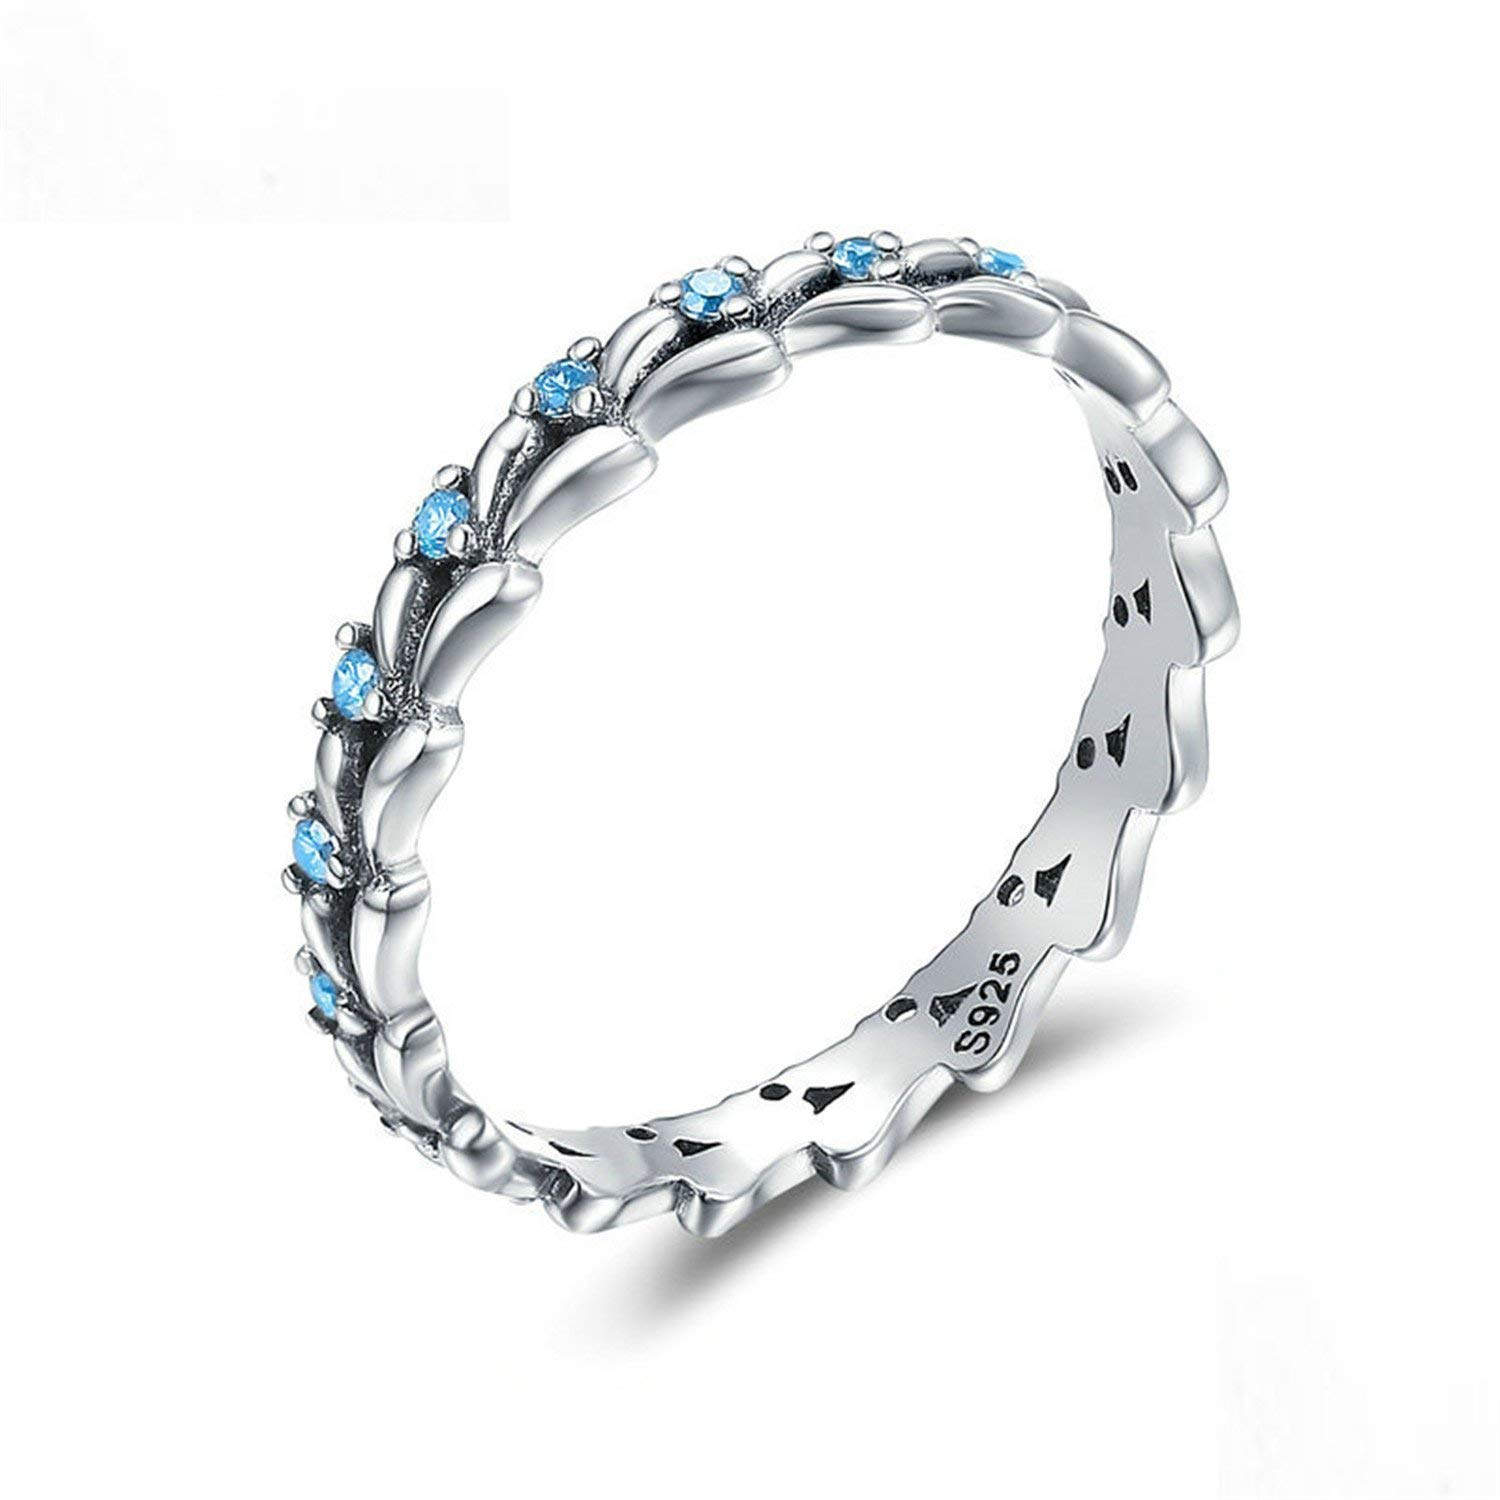 Baqijian Sterling Stackable Ring Wheat Wave Clear Finger Rings Women Sterling Jewelry Scr162